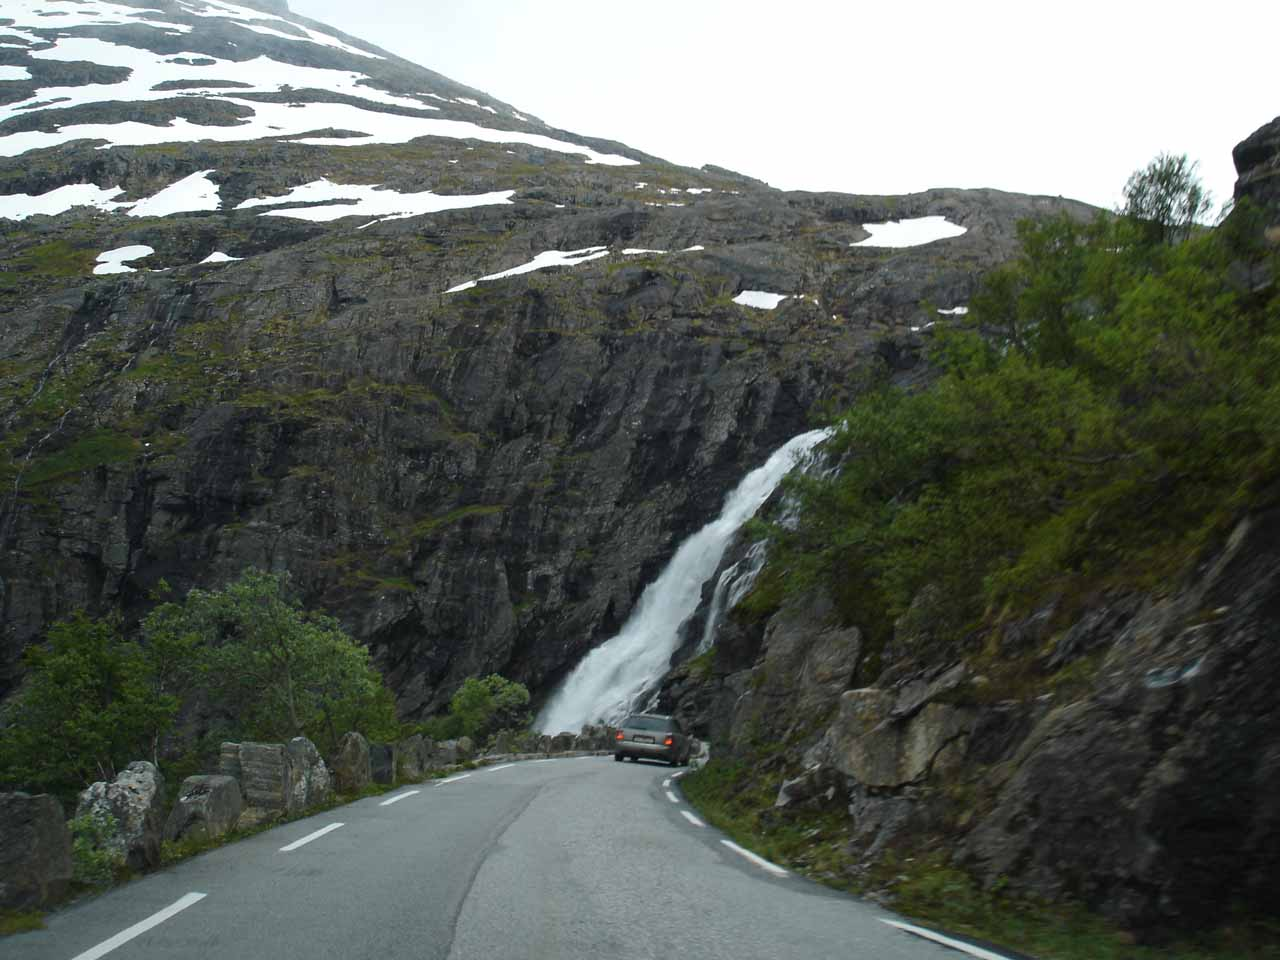 Following a car on our way down Trollstigen, using low gear to ensure we wouldn't wear out our brakes